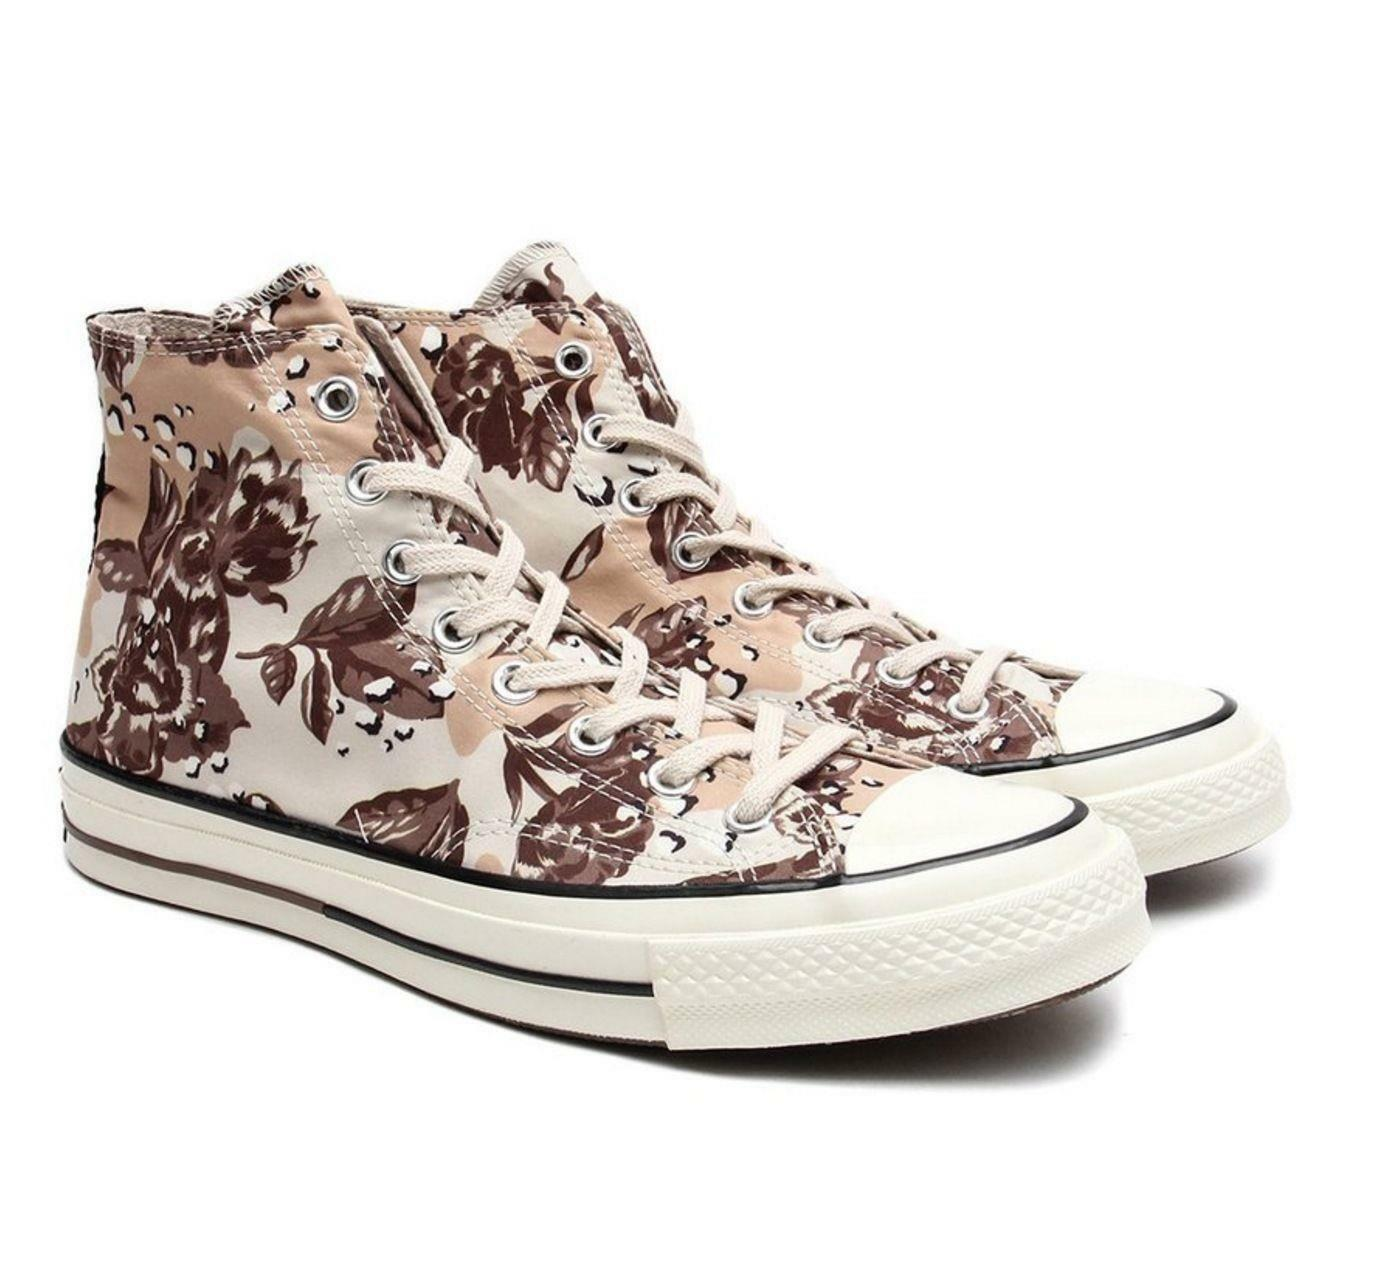 Converse 1970's 70 Hi Floral Chuck Taylor All Star Sneaker pink Mayflower 148553